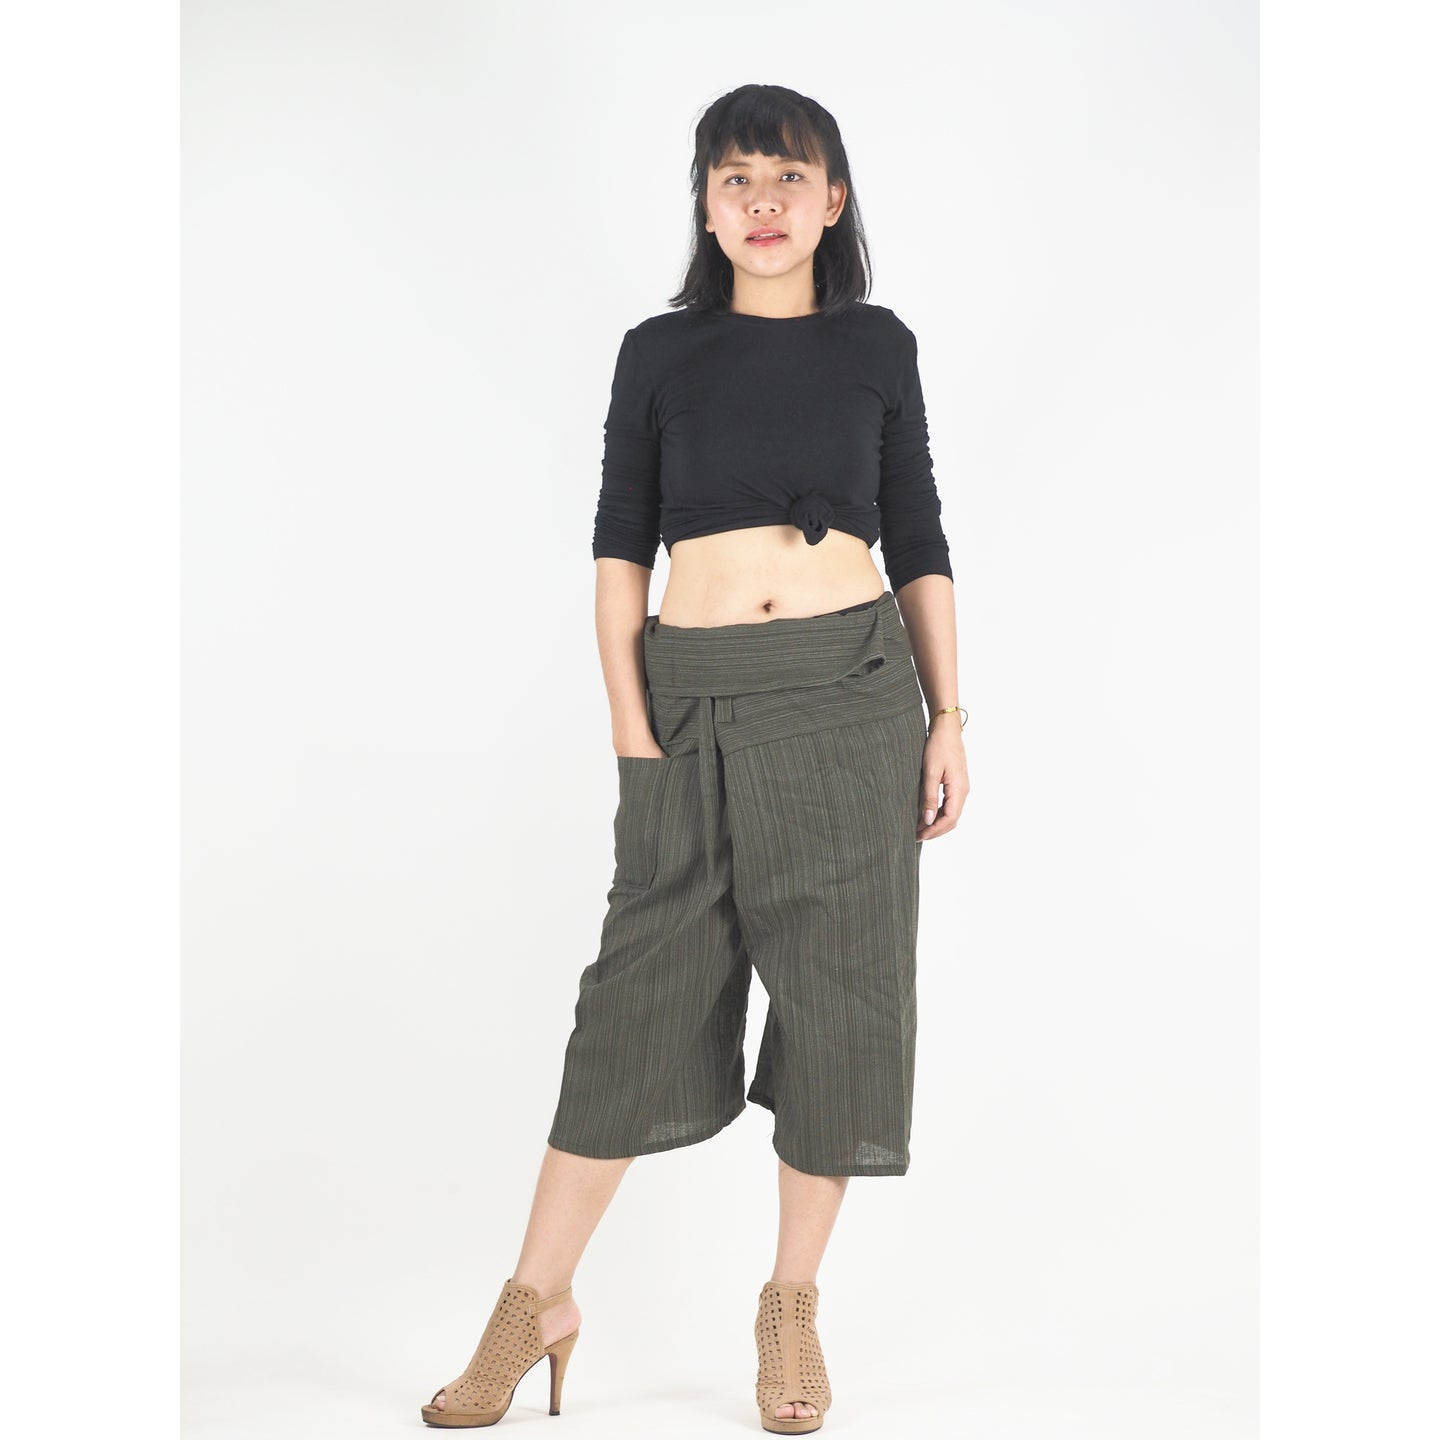 Solid color Unisex Fisherman Yoga Shorts Pants in Olive PP0027 010000 13